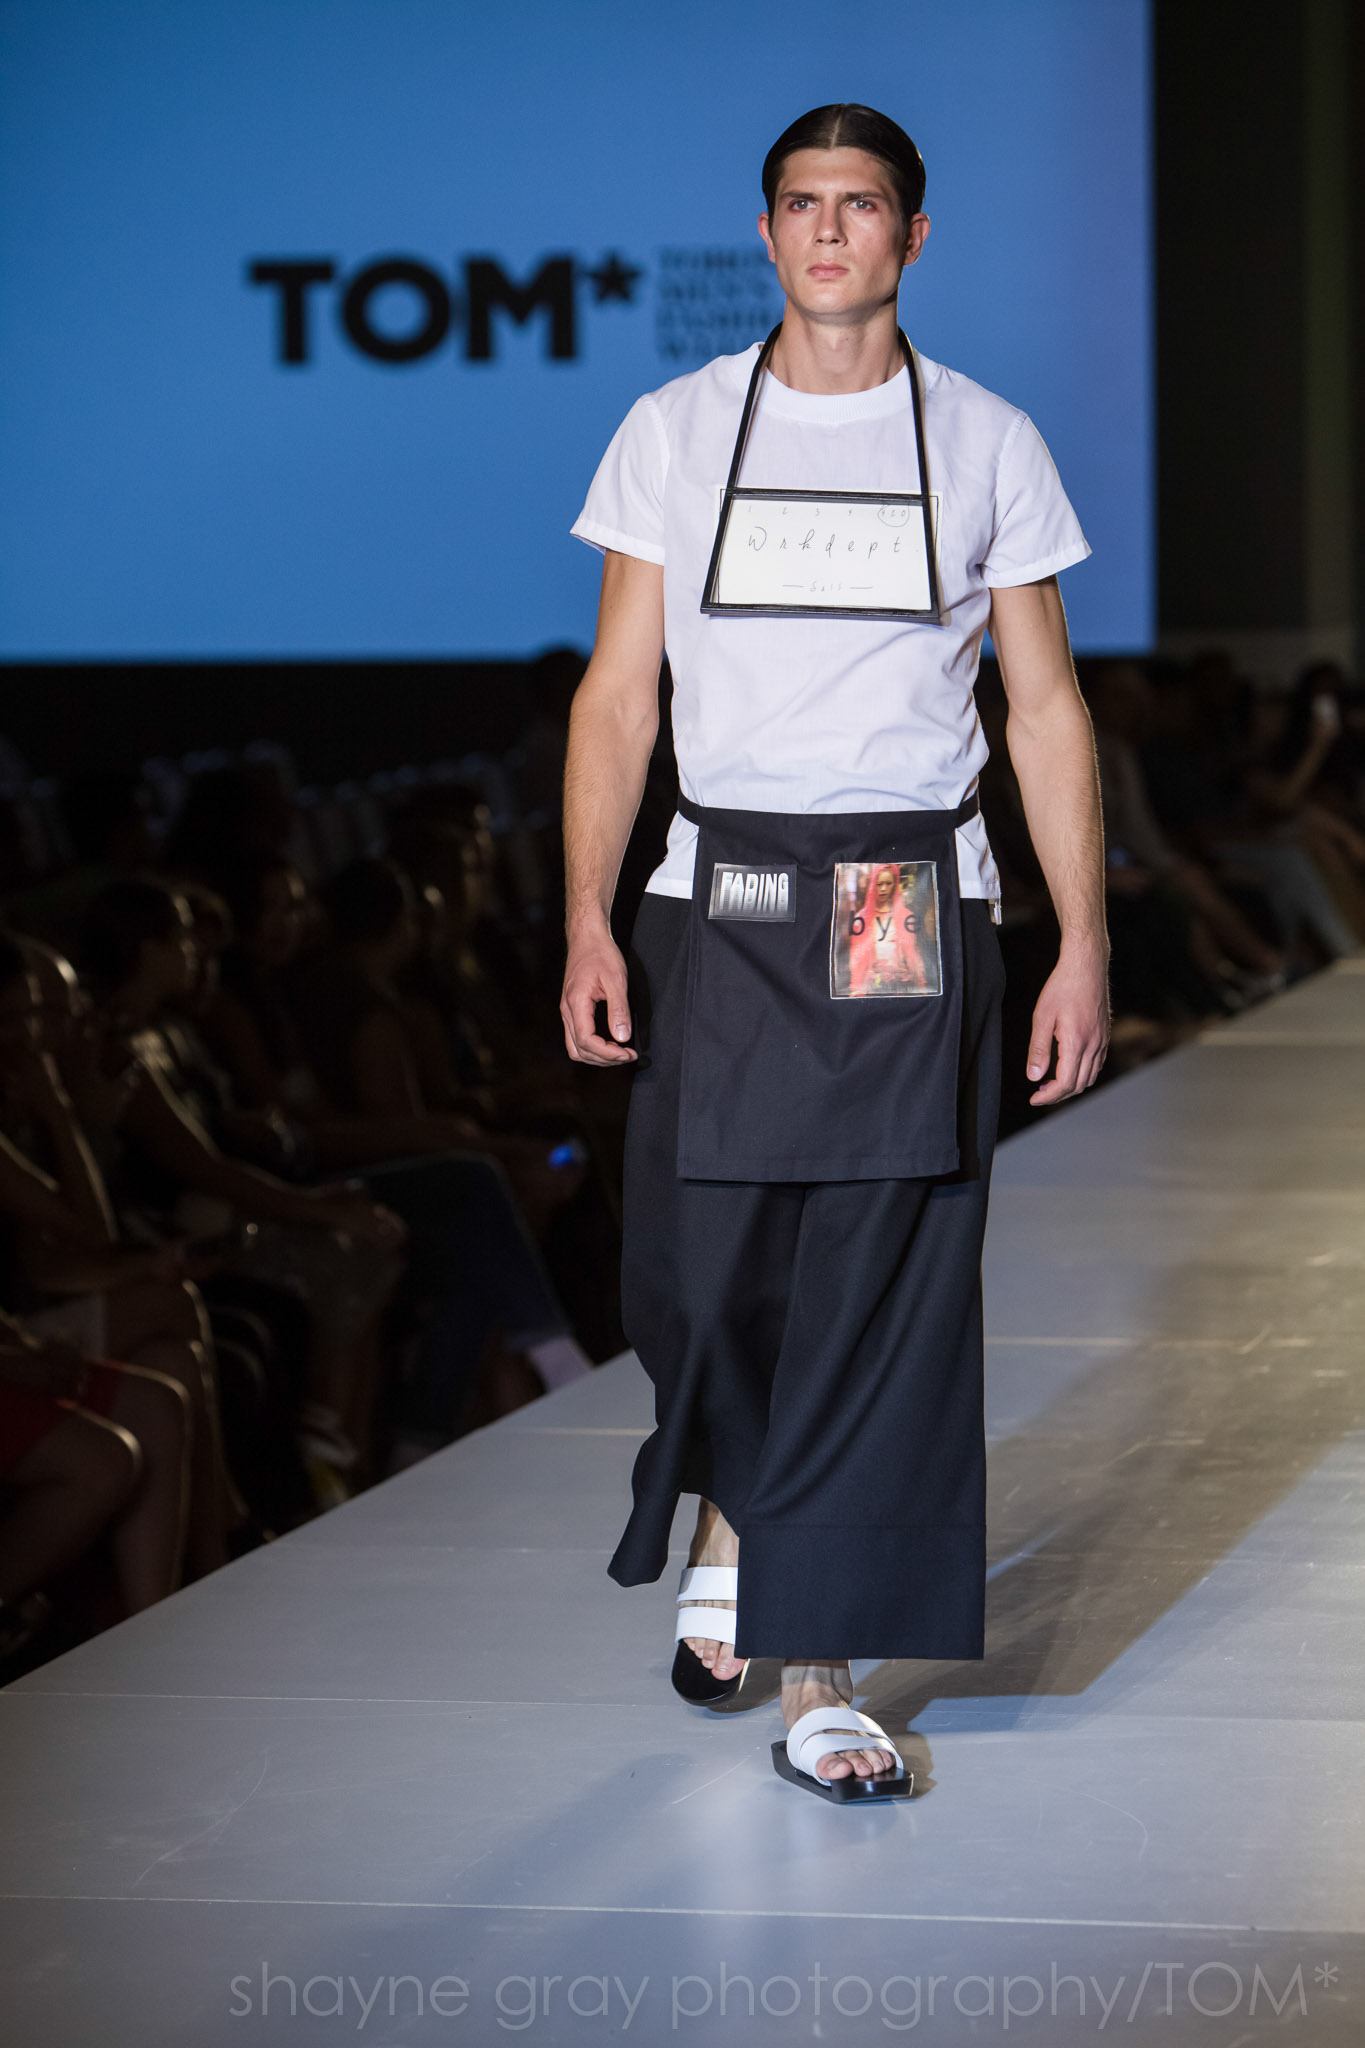 Shayne-Gray-Toronto-men's-fashion_week-TOM-wrkdept-8702.jpg